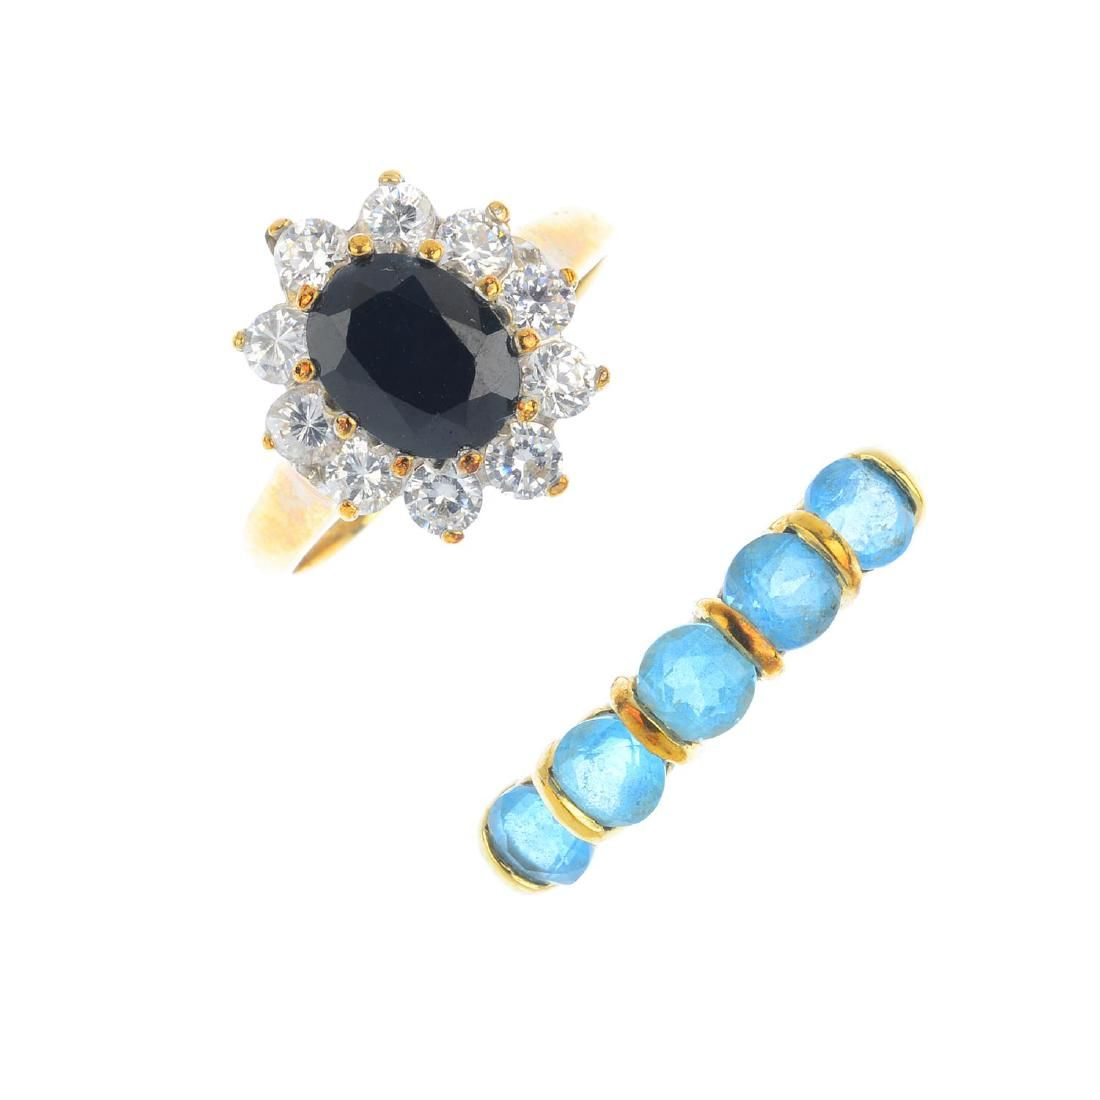 Four 9ct gold gem-set rings. To include a blue topaz